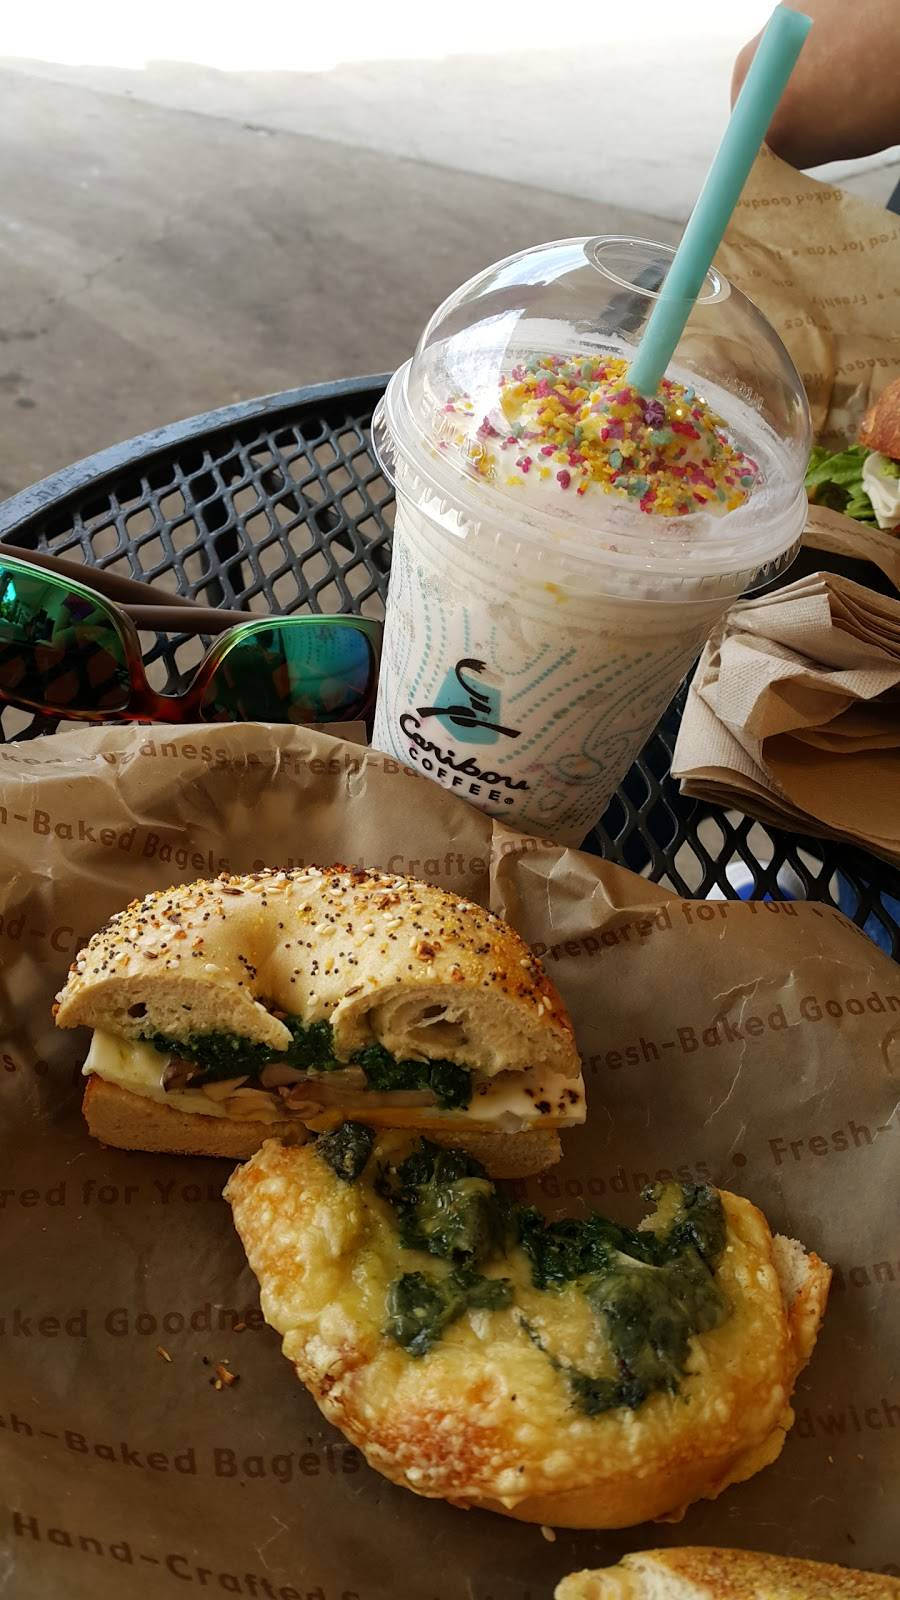 Einstein Bros. Bagels   cafe   2519 McMullen Booth Rd, Clearwater, FL 33761, USA   7277913909 OR +1 727-791-3909